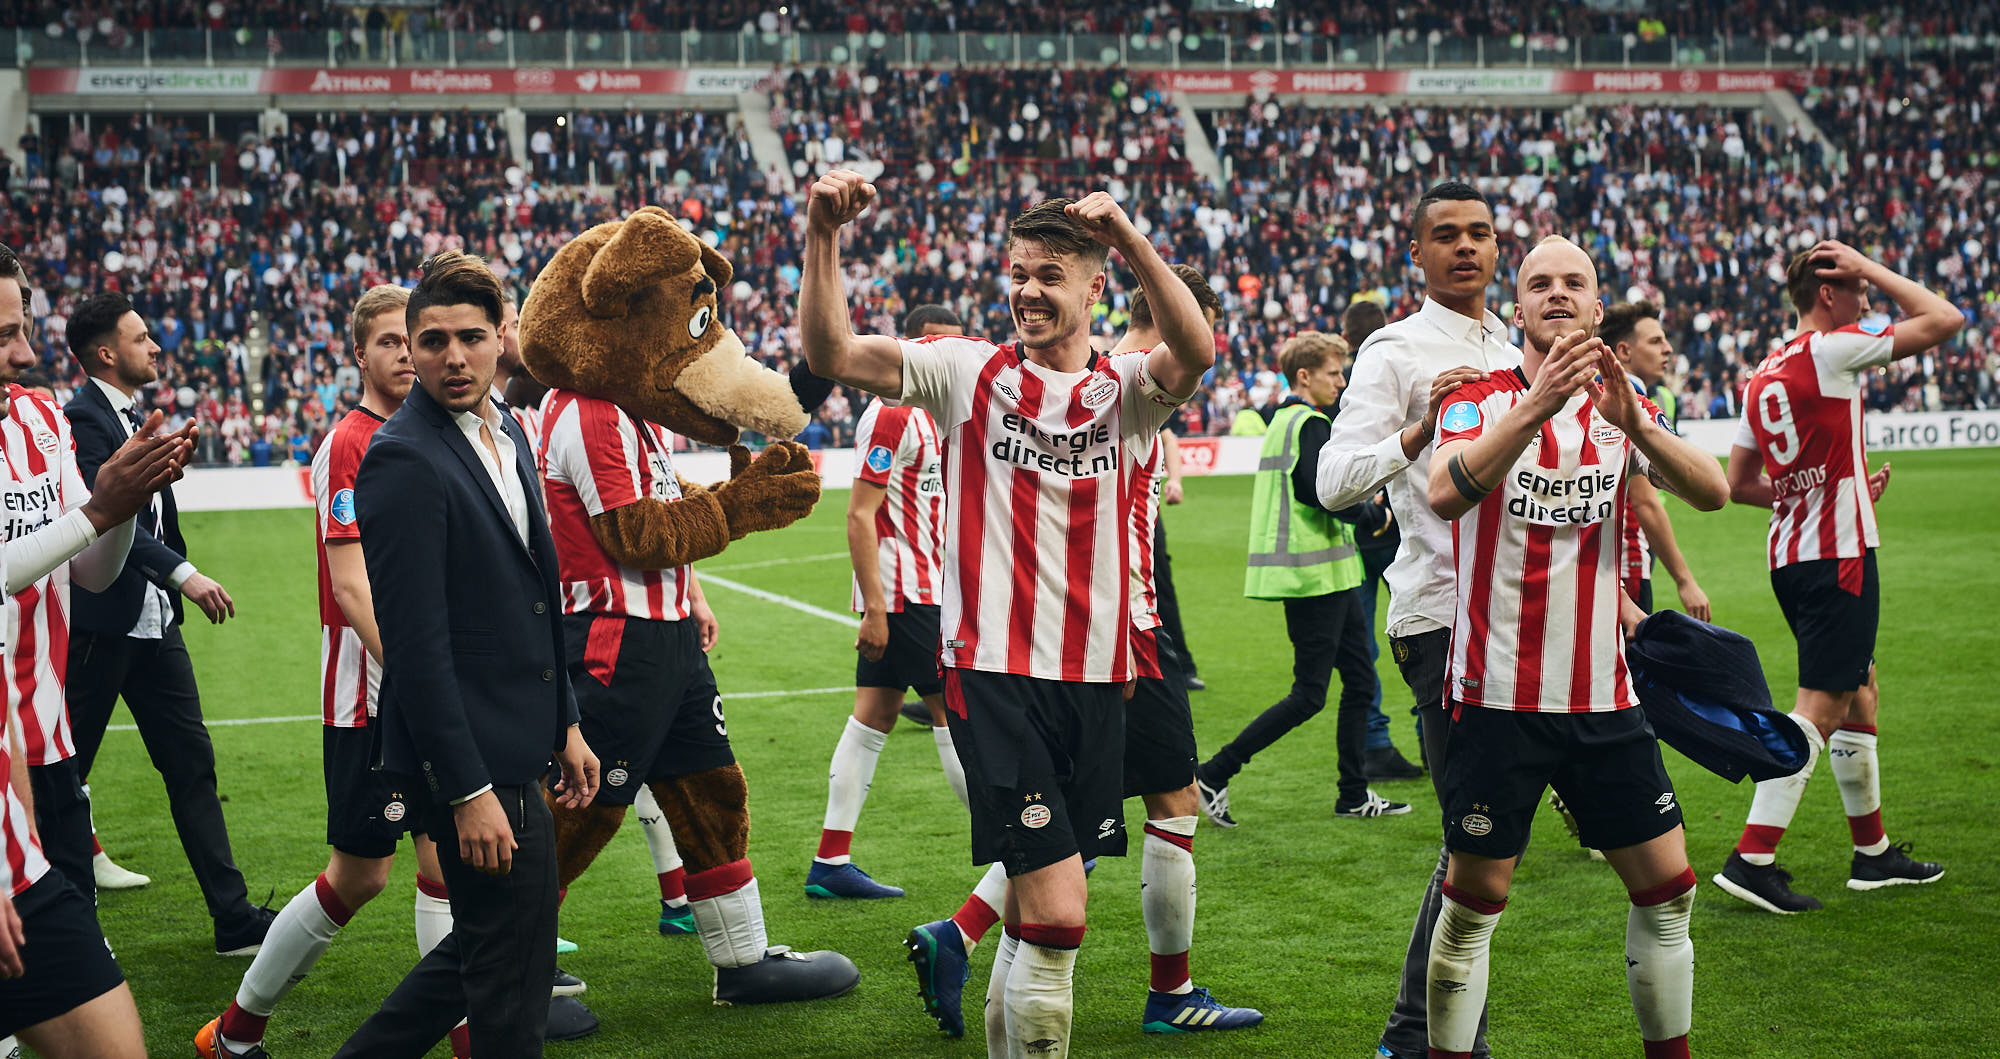 PSV Eindhoven midfielder Marco van Ginkel cheers during title celebrations